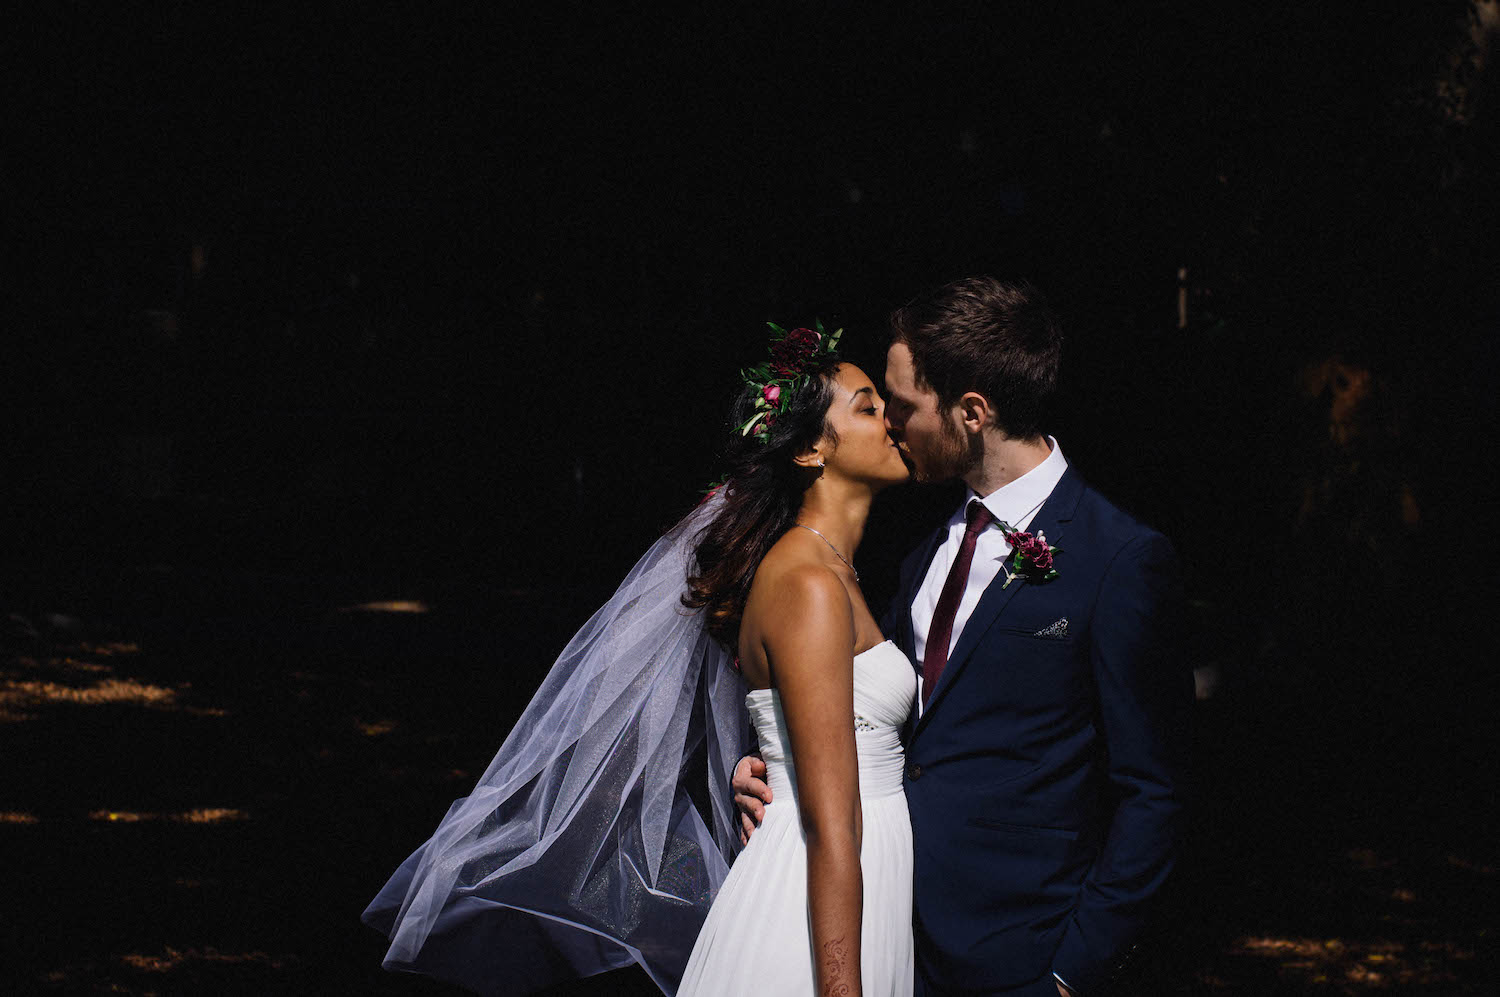 A Bride & Groom under Perth's harsh summer light at their January Subiaco wedding, photo taken by Rhianna May Destination Wedding Photographer